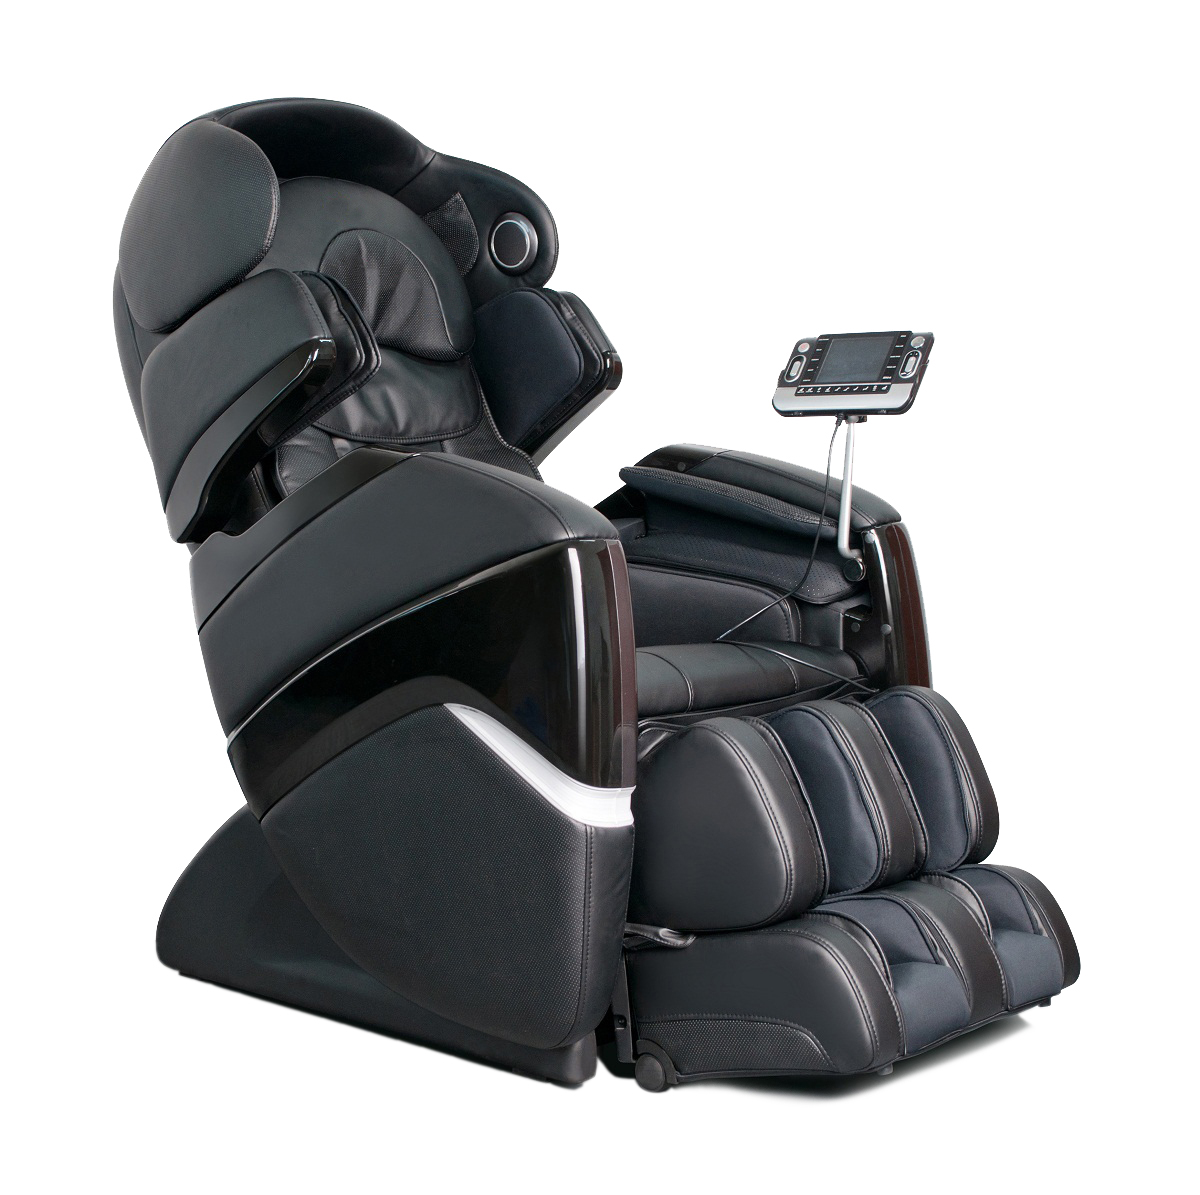 osaki os 3d cyber pro massage chair accent with arms os-3d zero gravity recliner